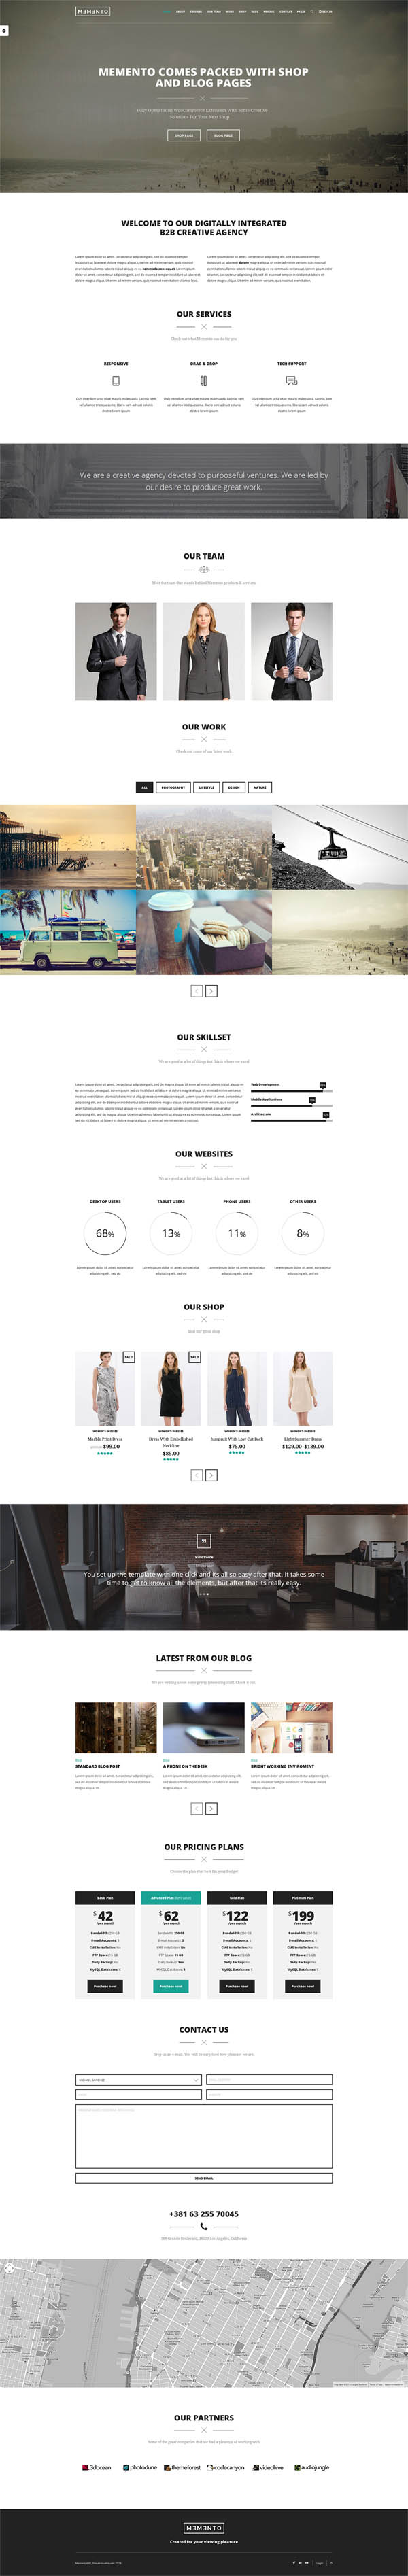 Memento - One Page WordPress Theme With WooCommerce